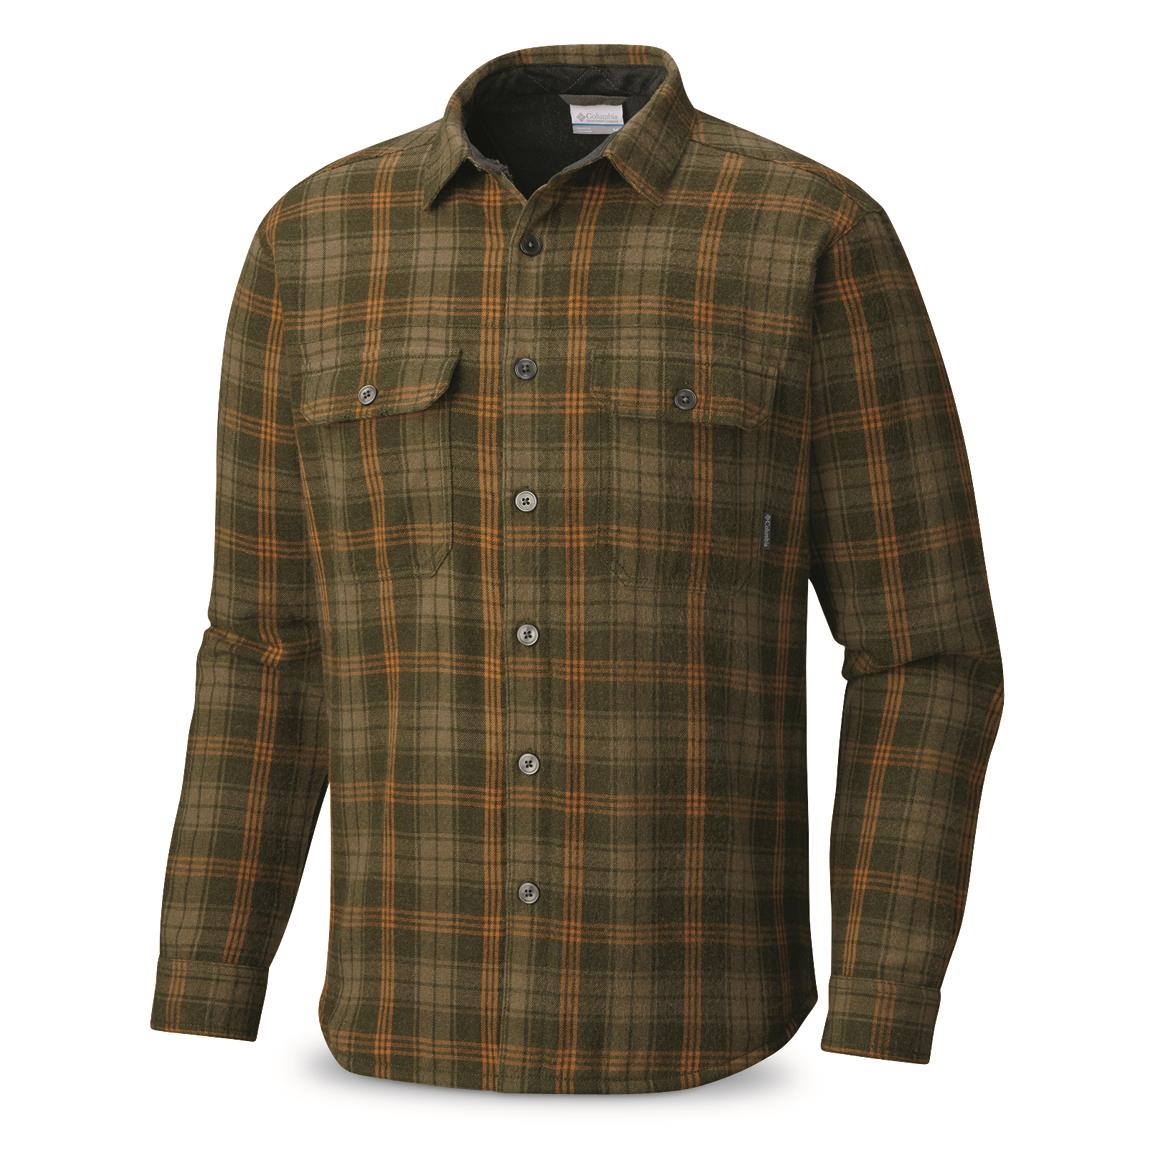 Columbia Men's Windward III Overshirt, Surplus Green Plaid